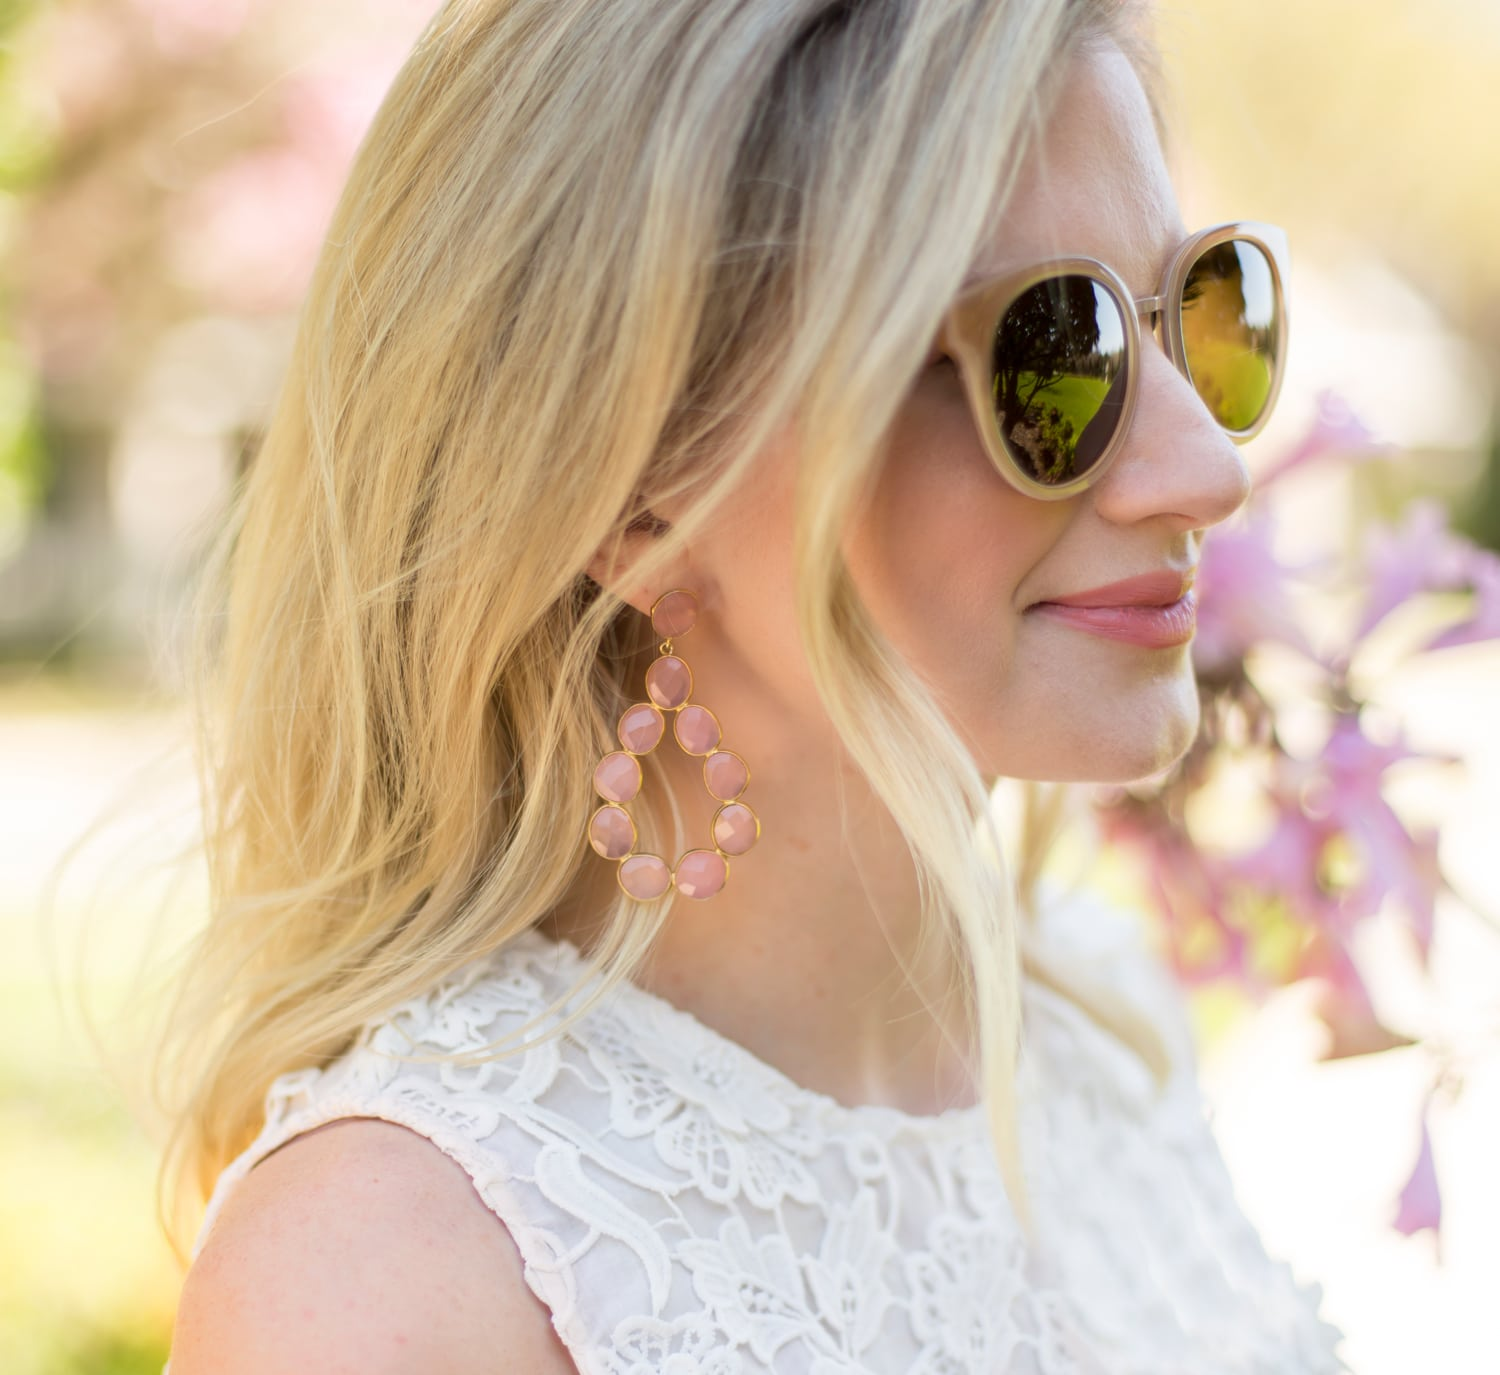 Blogger Ashley Brooke's New Favorite Jewelry Line: Elyssa Bass | www.ashleybrookedesigns.com